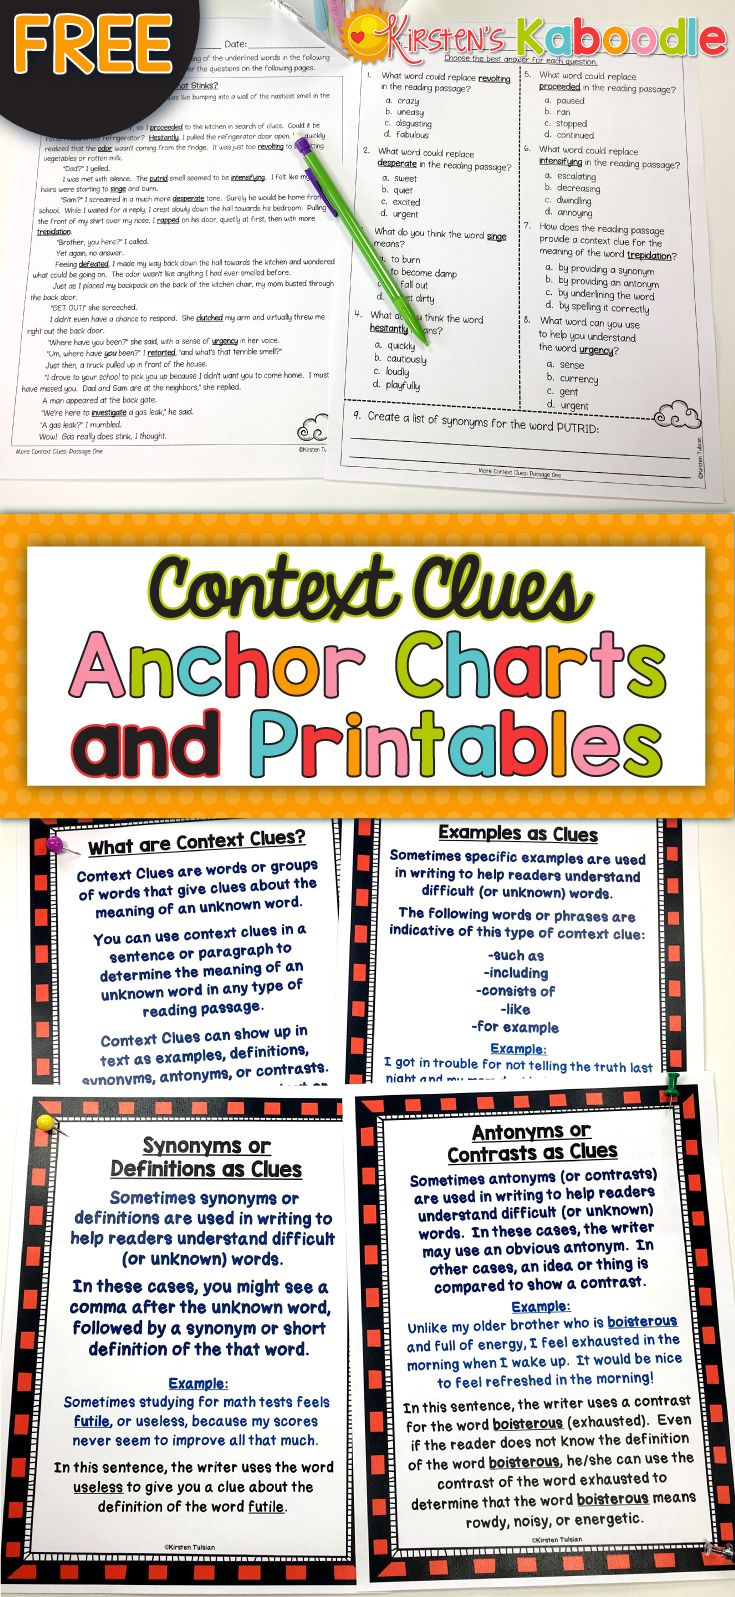 FREE! Are you teaching your students about context clues? This free context clues file includes anchor charts and printables.  It is a print and go, easy to use, fun activity for your students as a review, an introduction, or a warm-up or station activity. Enjoy!